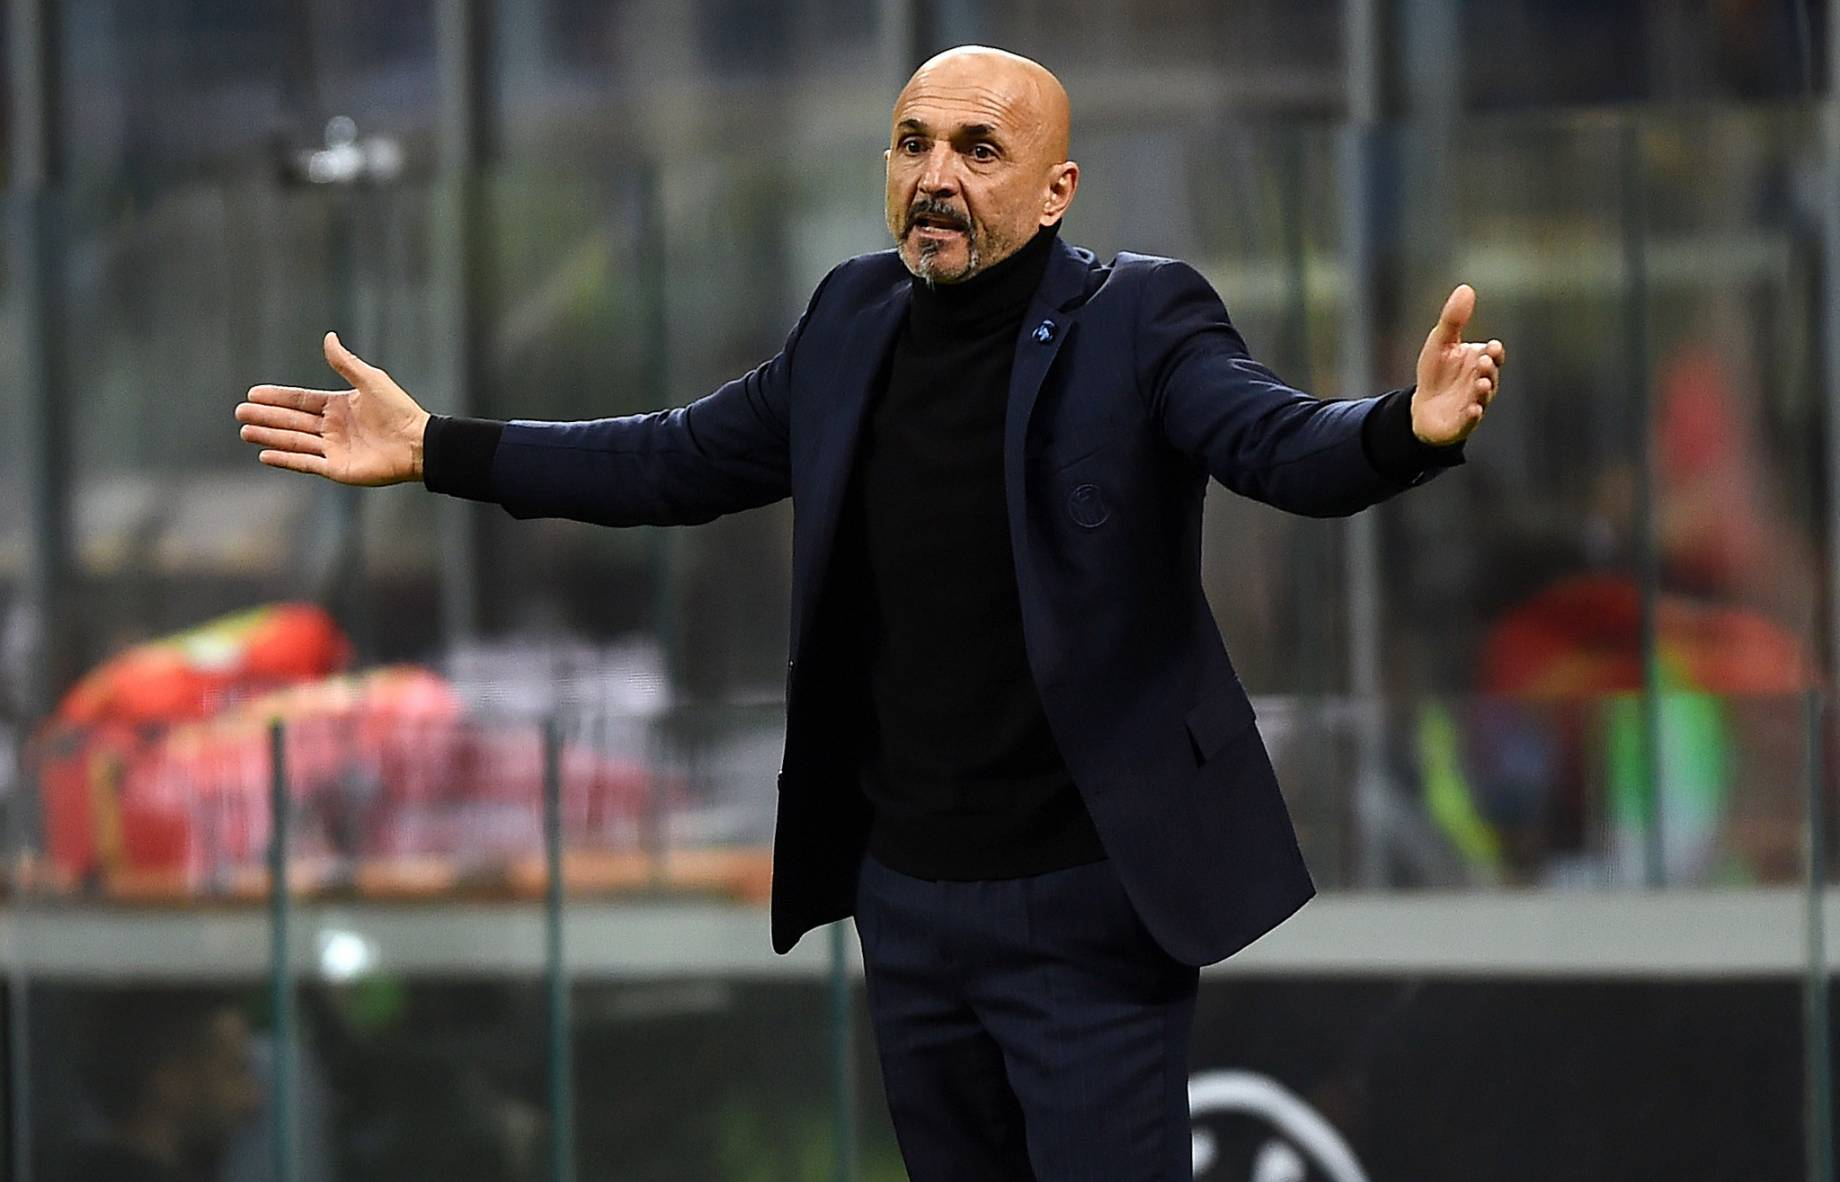 Spalletti_MG2_8307.jpg